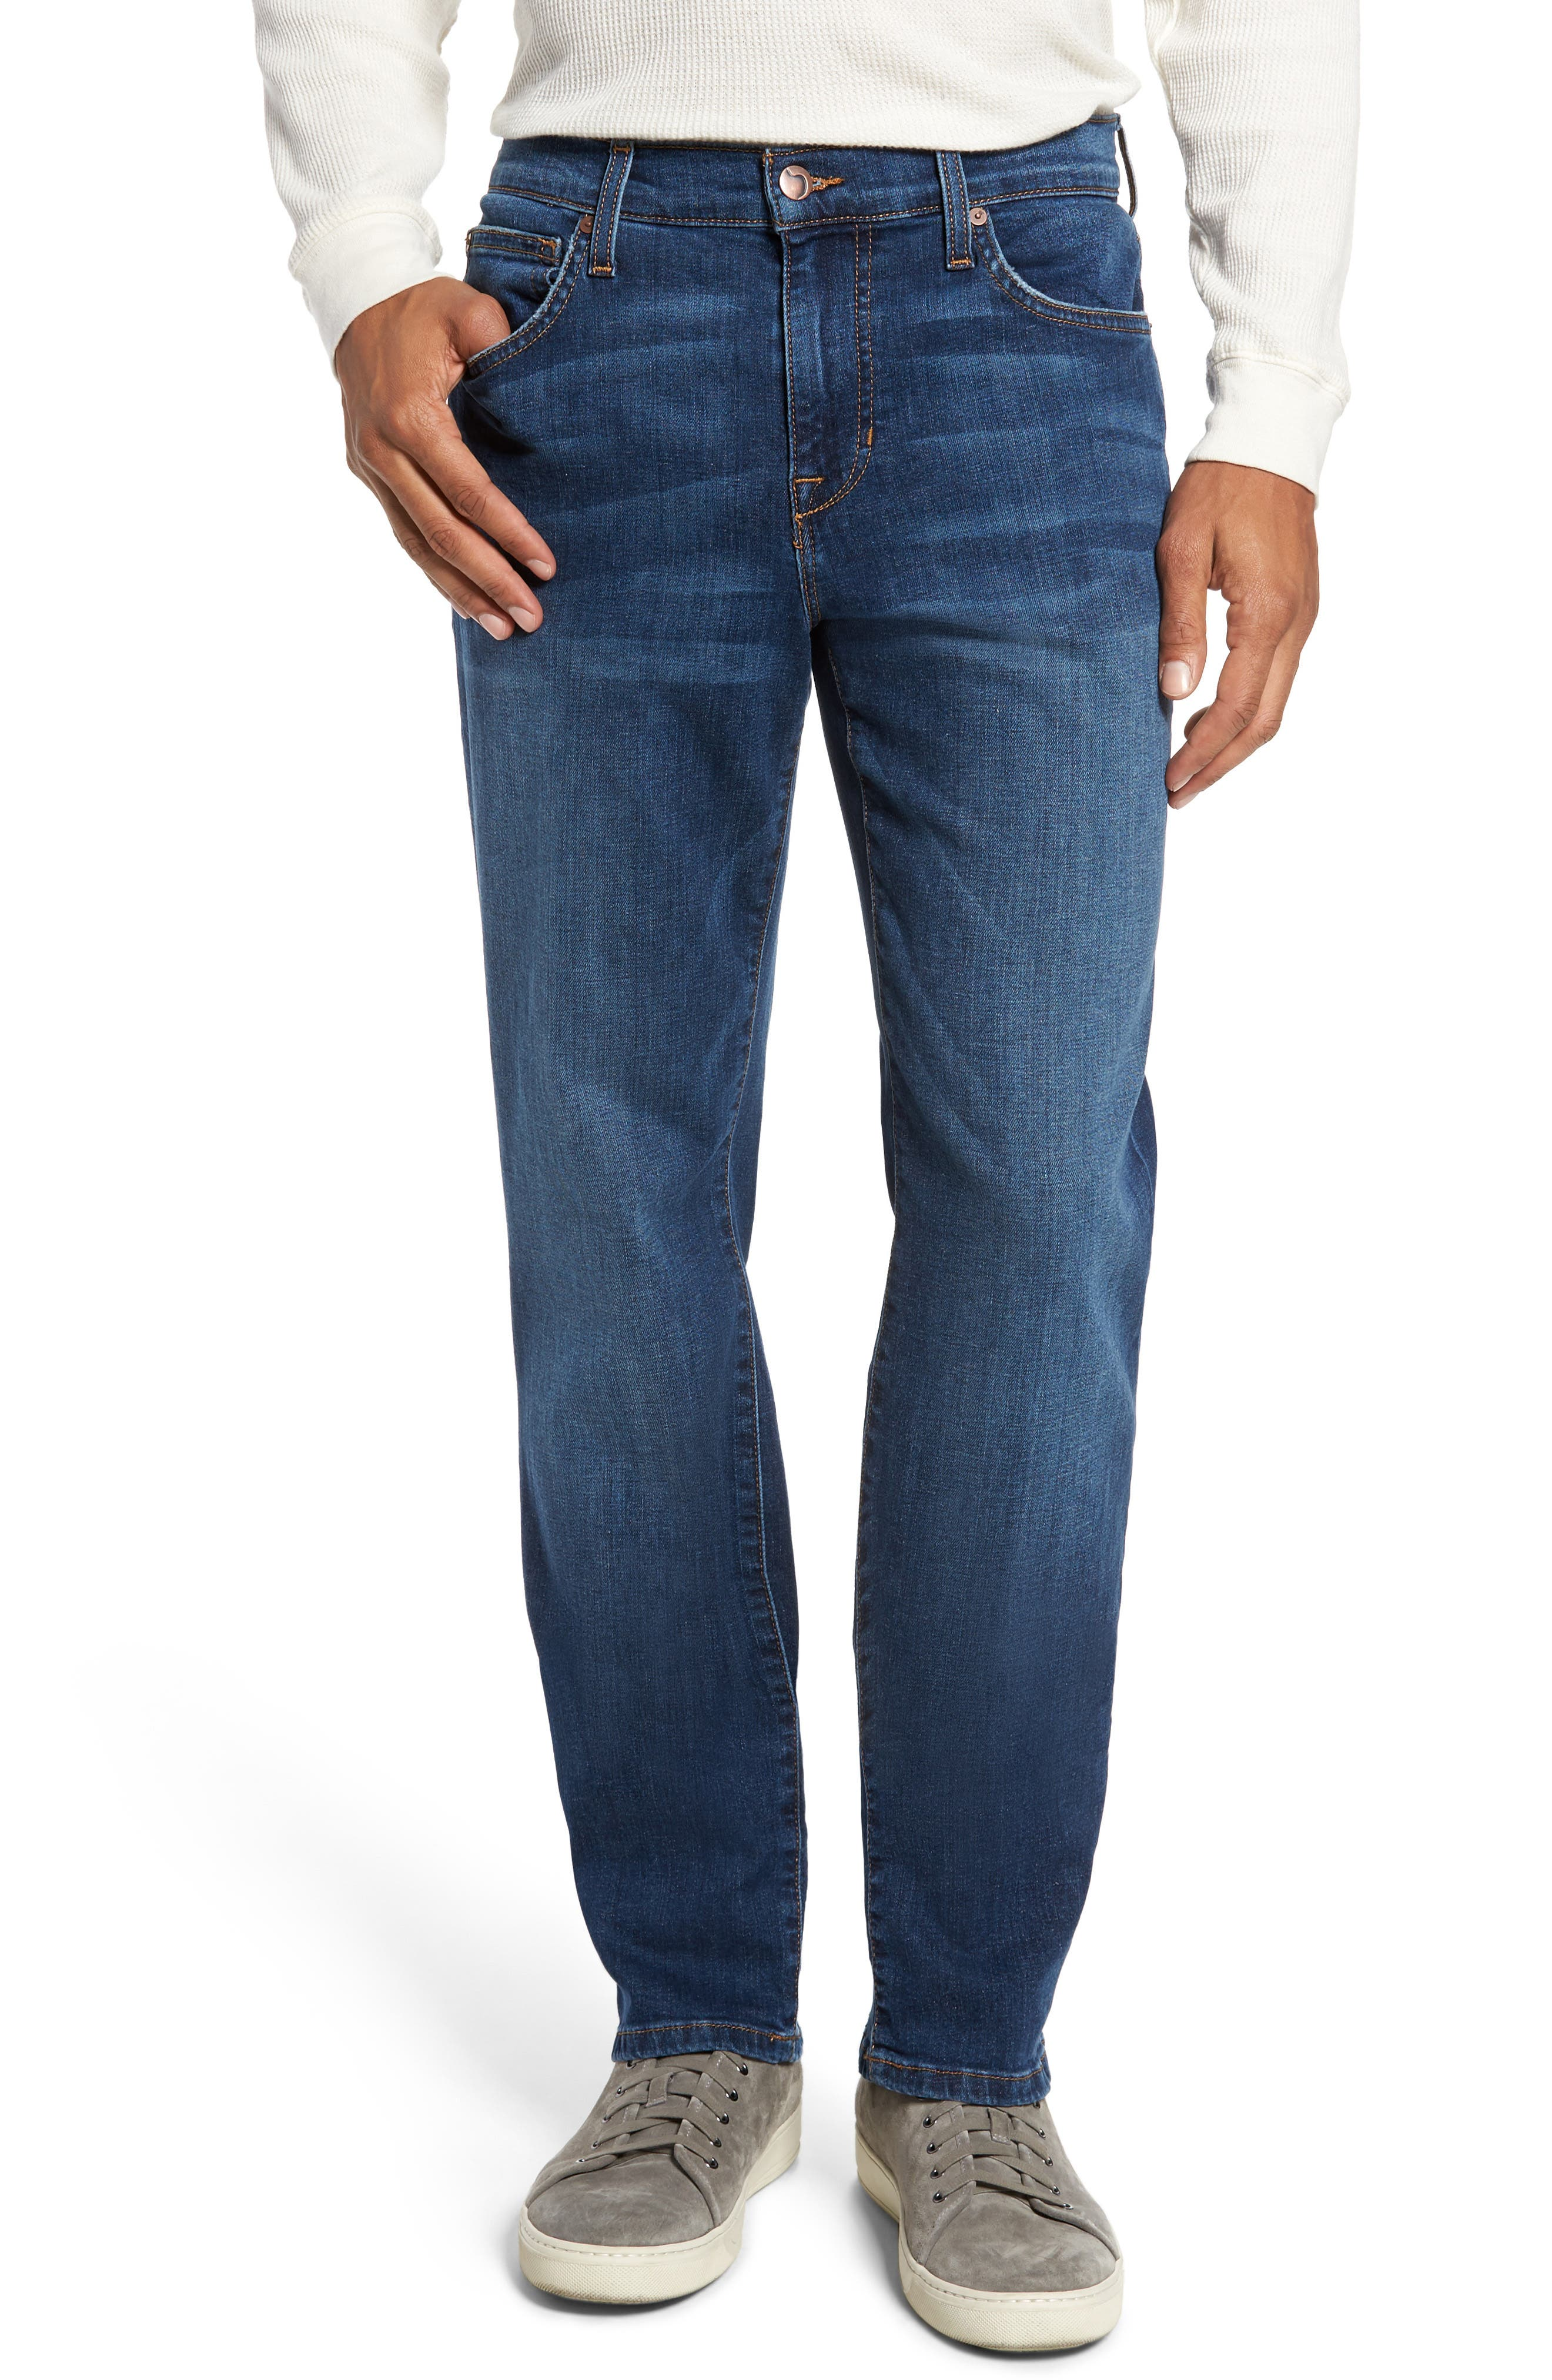 Brixton Slim Straight Leg Jeans,                             Main thumbnail 1, color,                             410